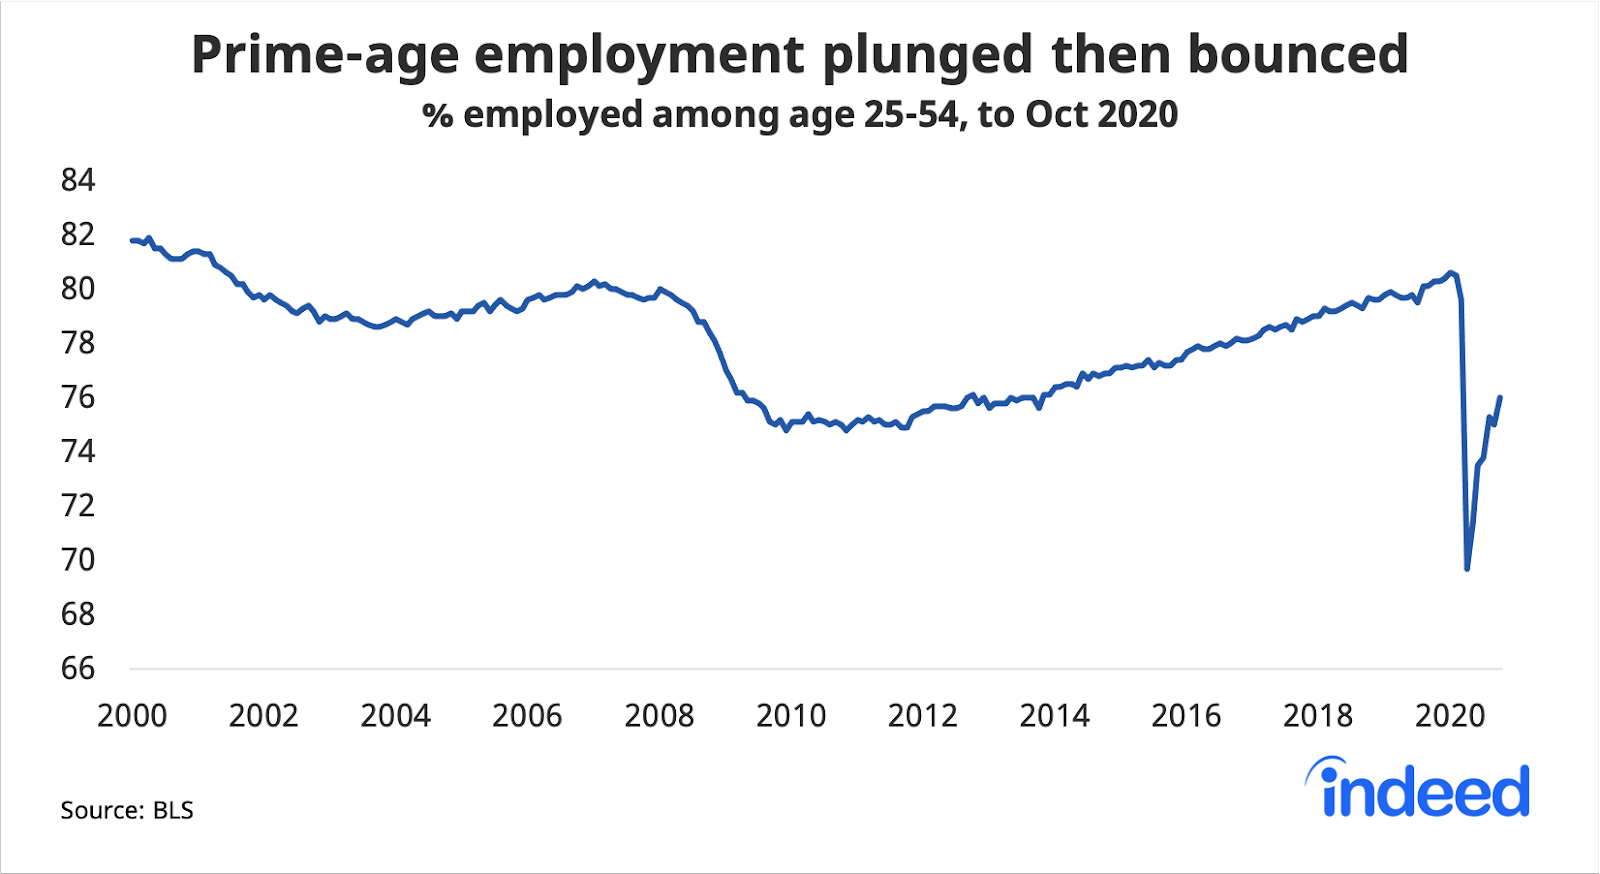 Line graph showing prime age employment plunged then bounced back this year